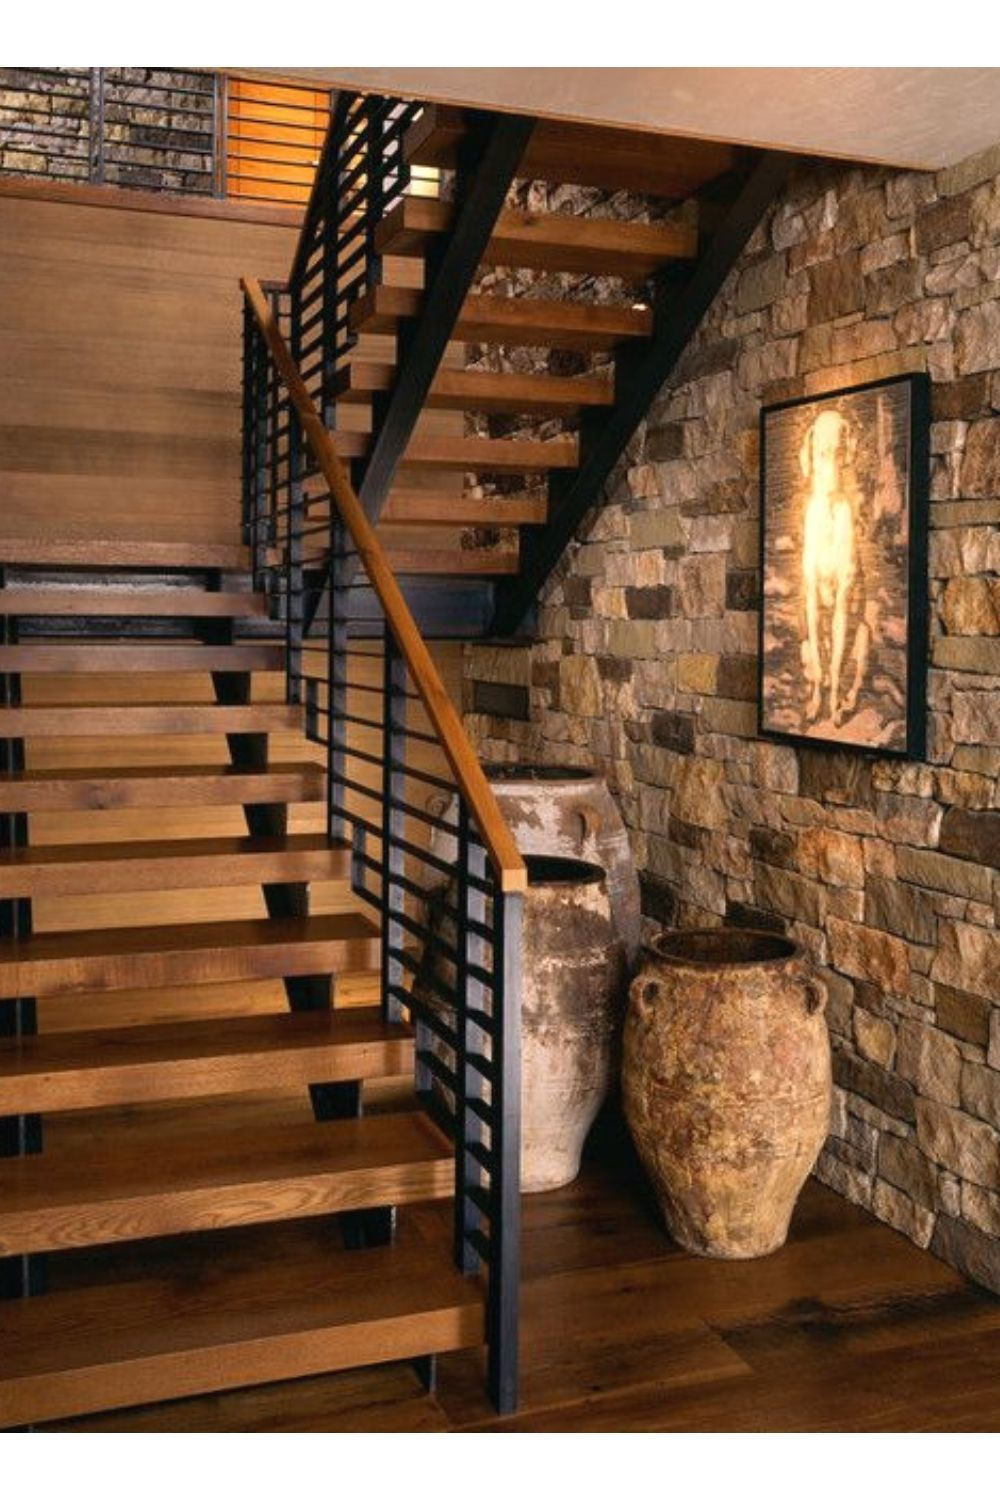 75 Most Popular Staircase Design Ideas For 2019: 26 Having Space Saving Staircase Designs Public All You